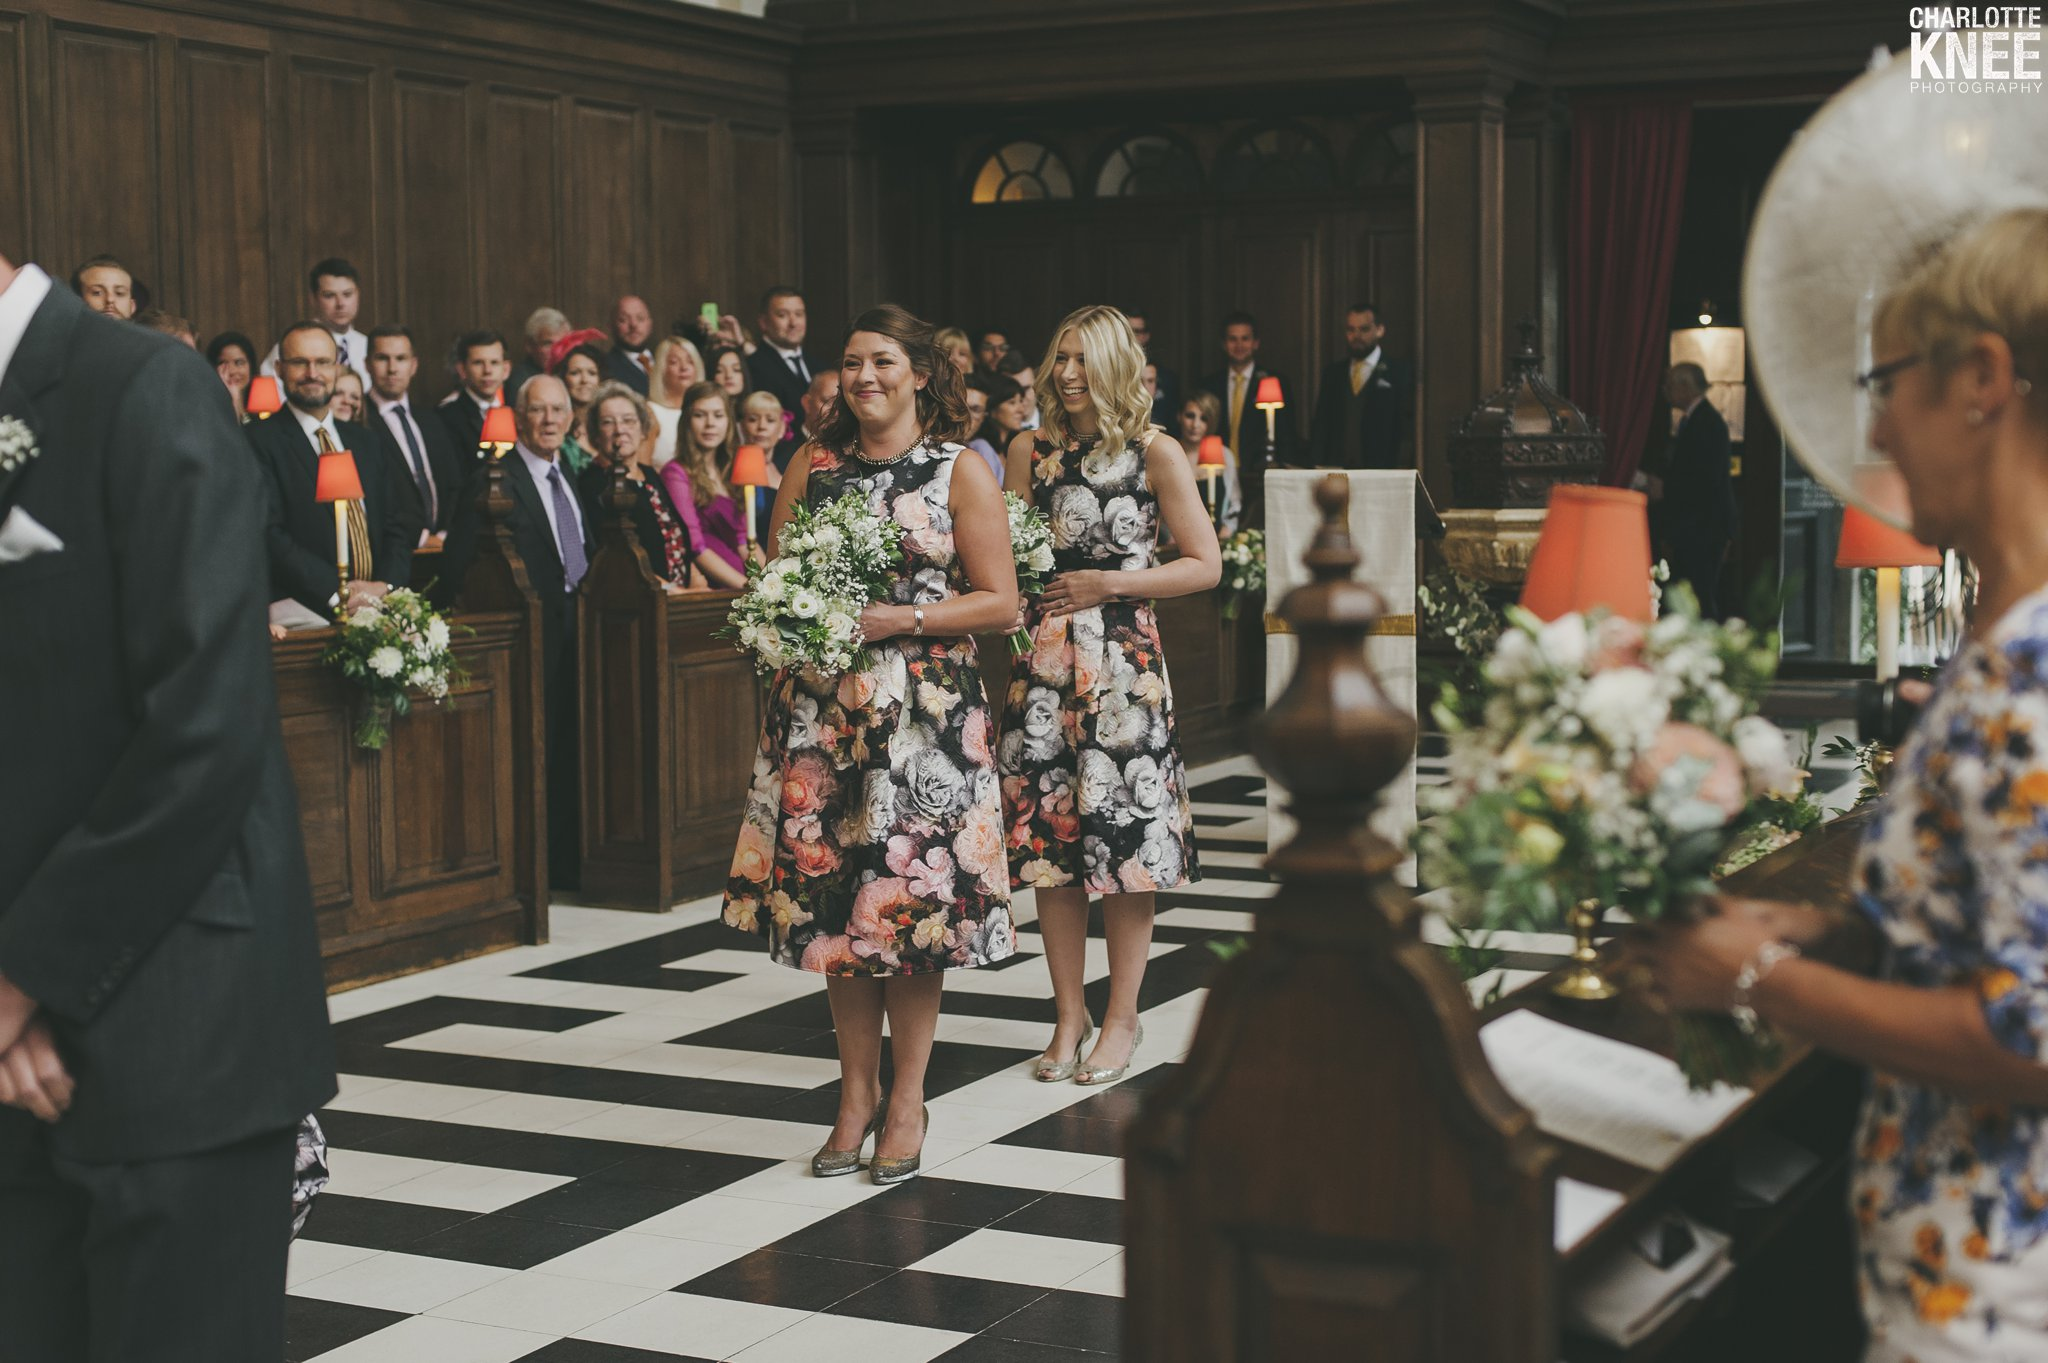 Saddlers Hall London Wedding Photography Copyright Charlotte Knee Photography_0077.jpg